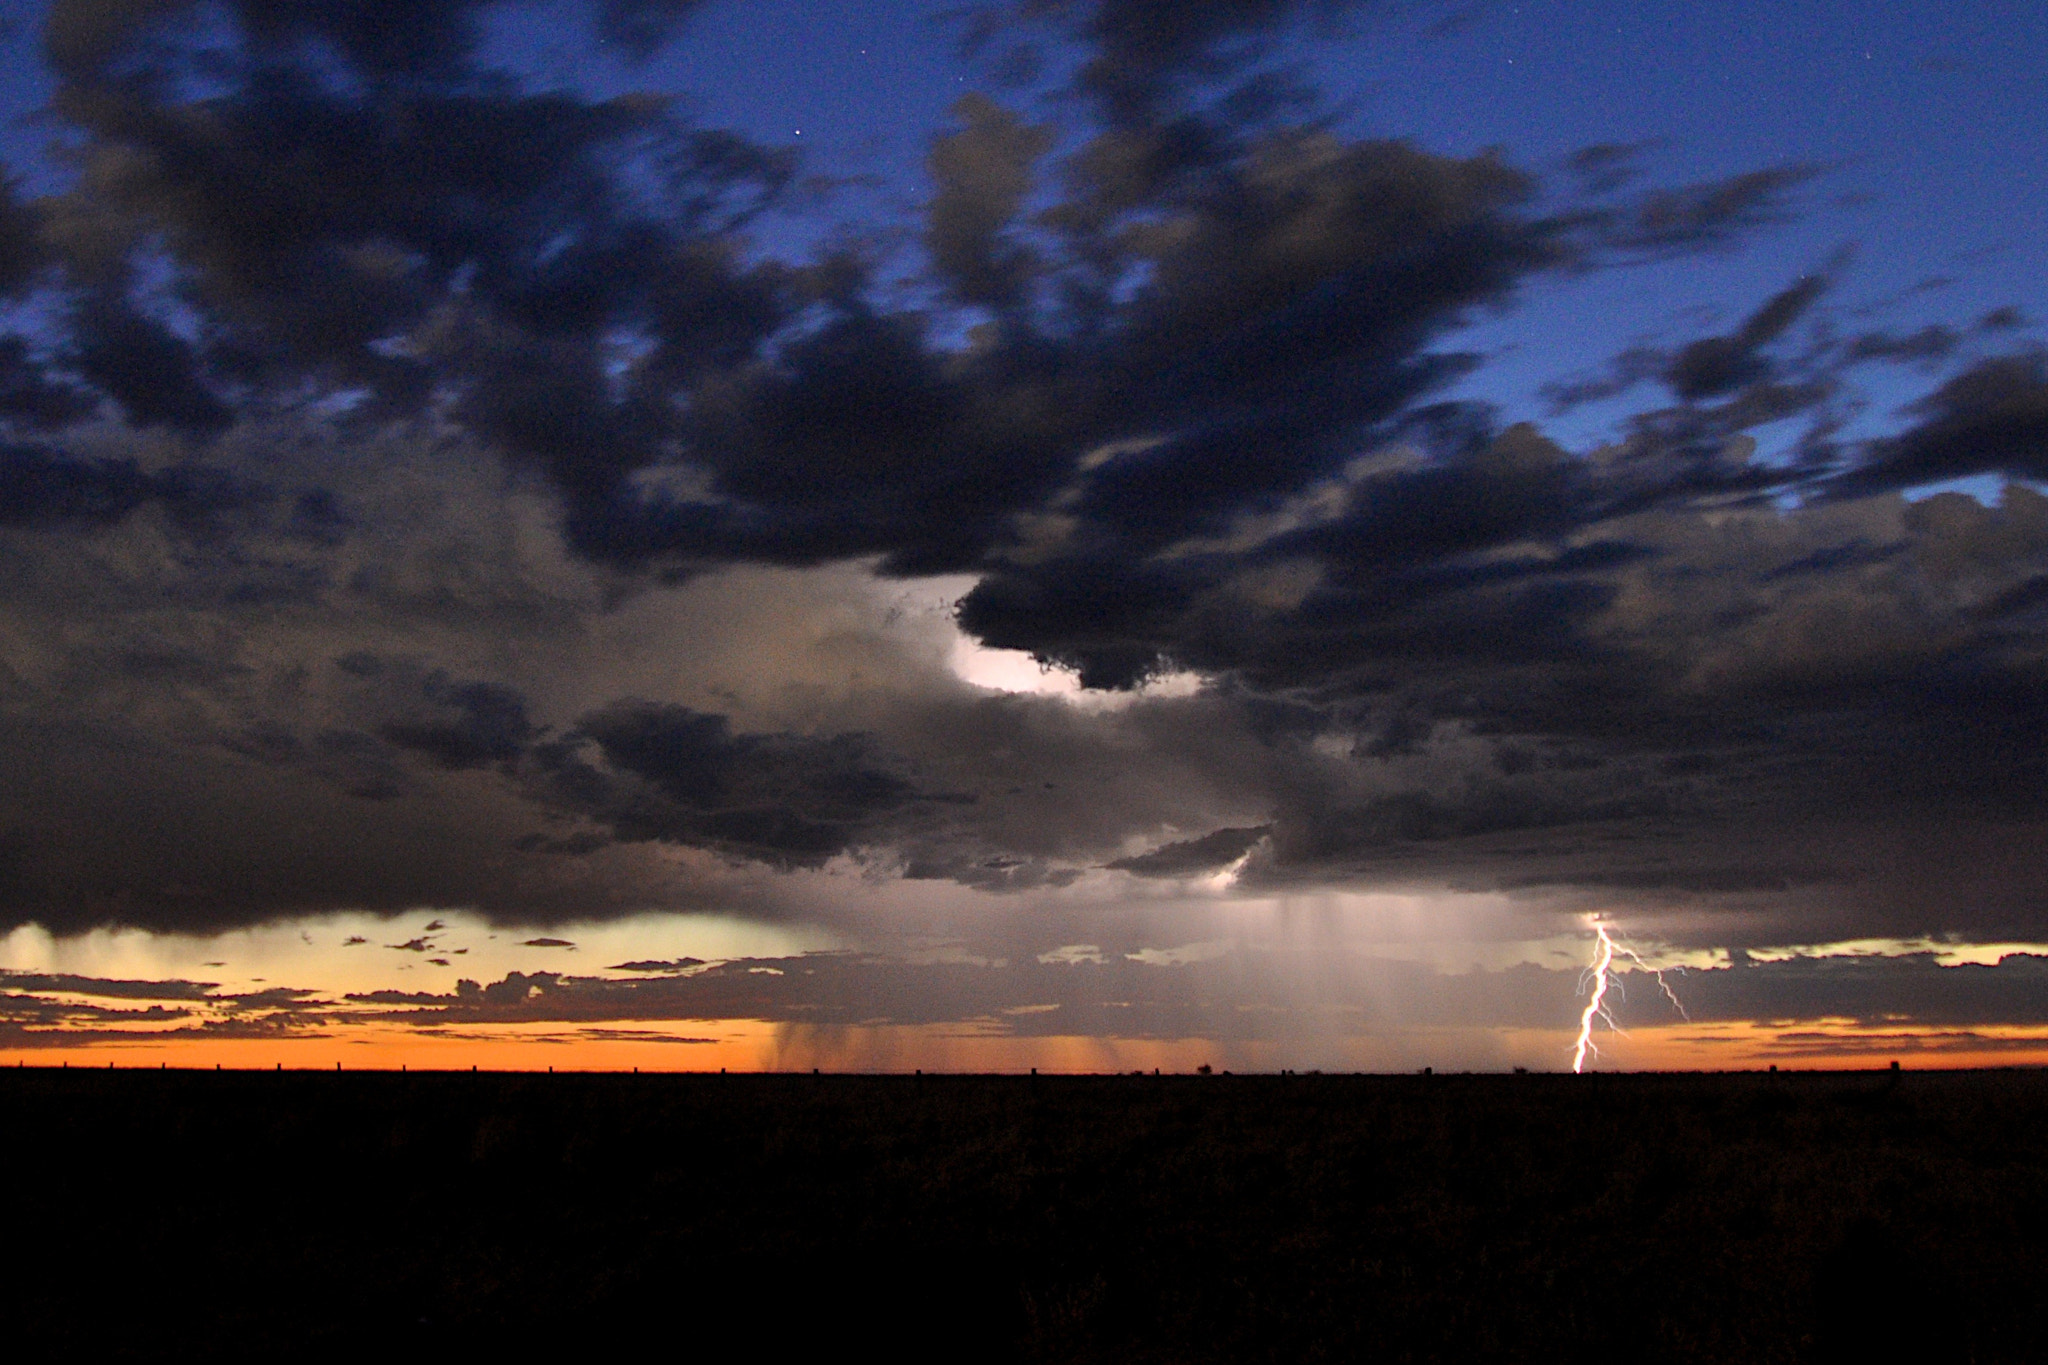 Photograph Storms and Lightning - 05 by David Freeman on 500px